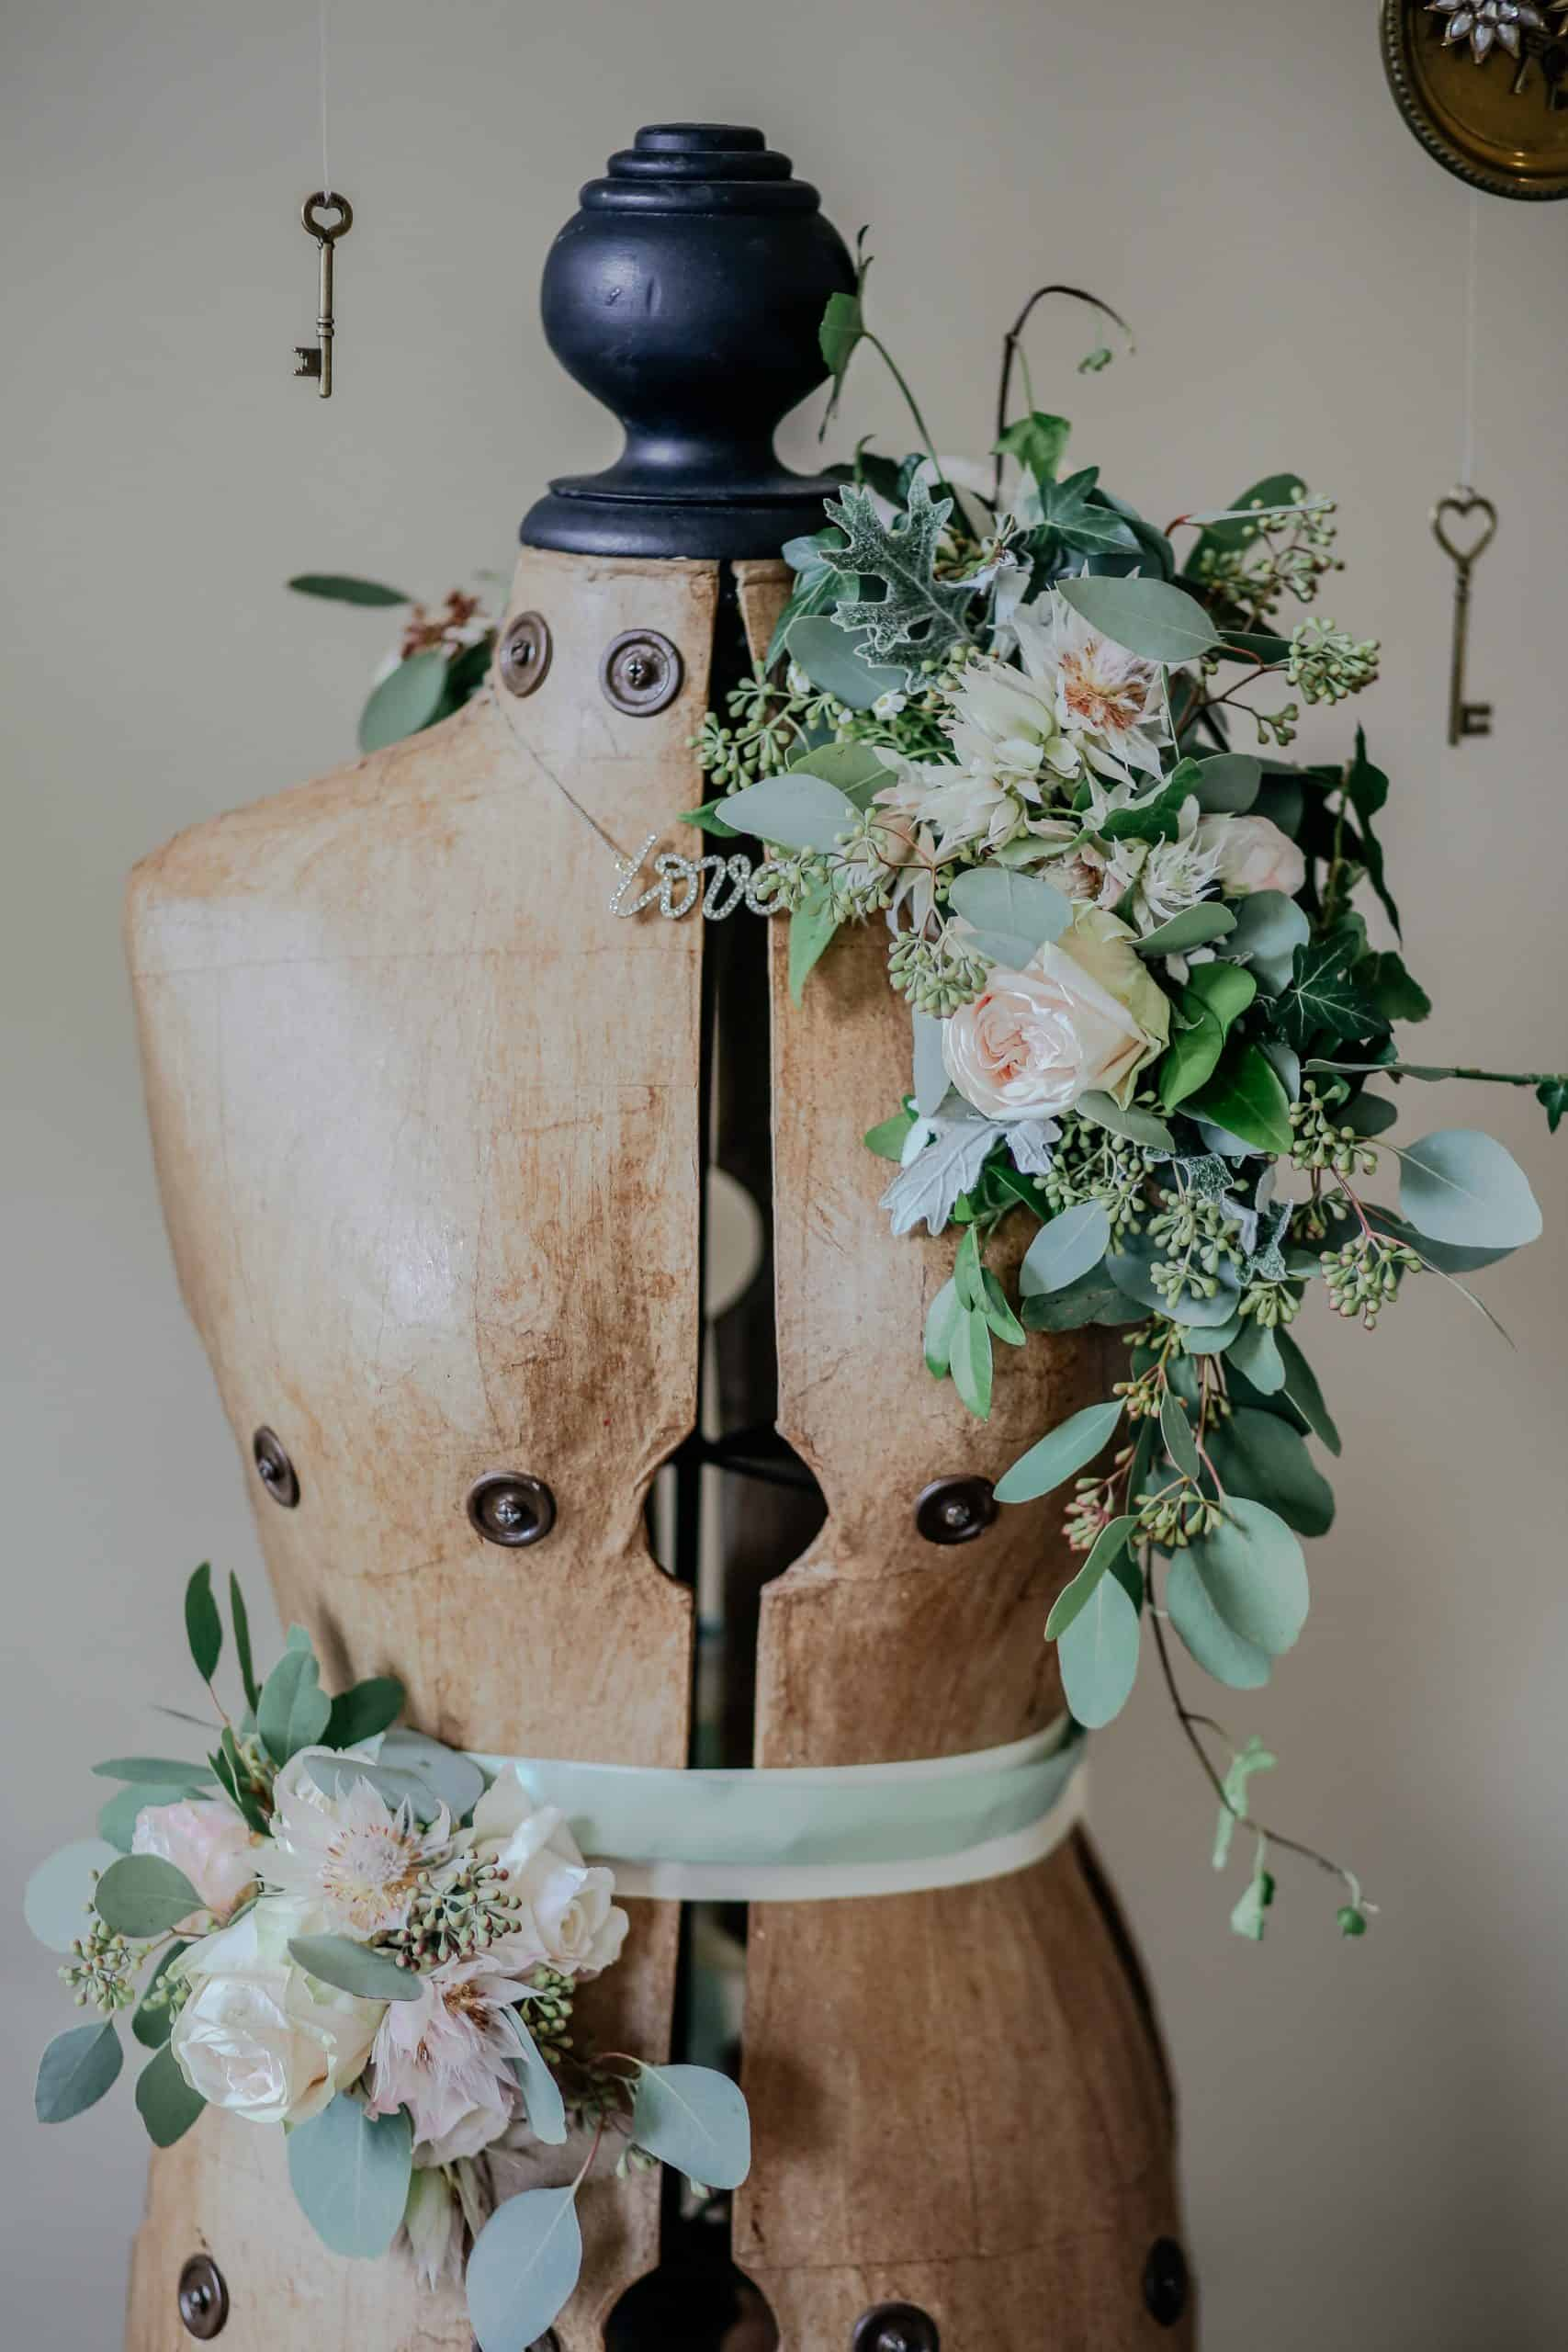 Artificial flowers decorating a wooden mannequin.